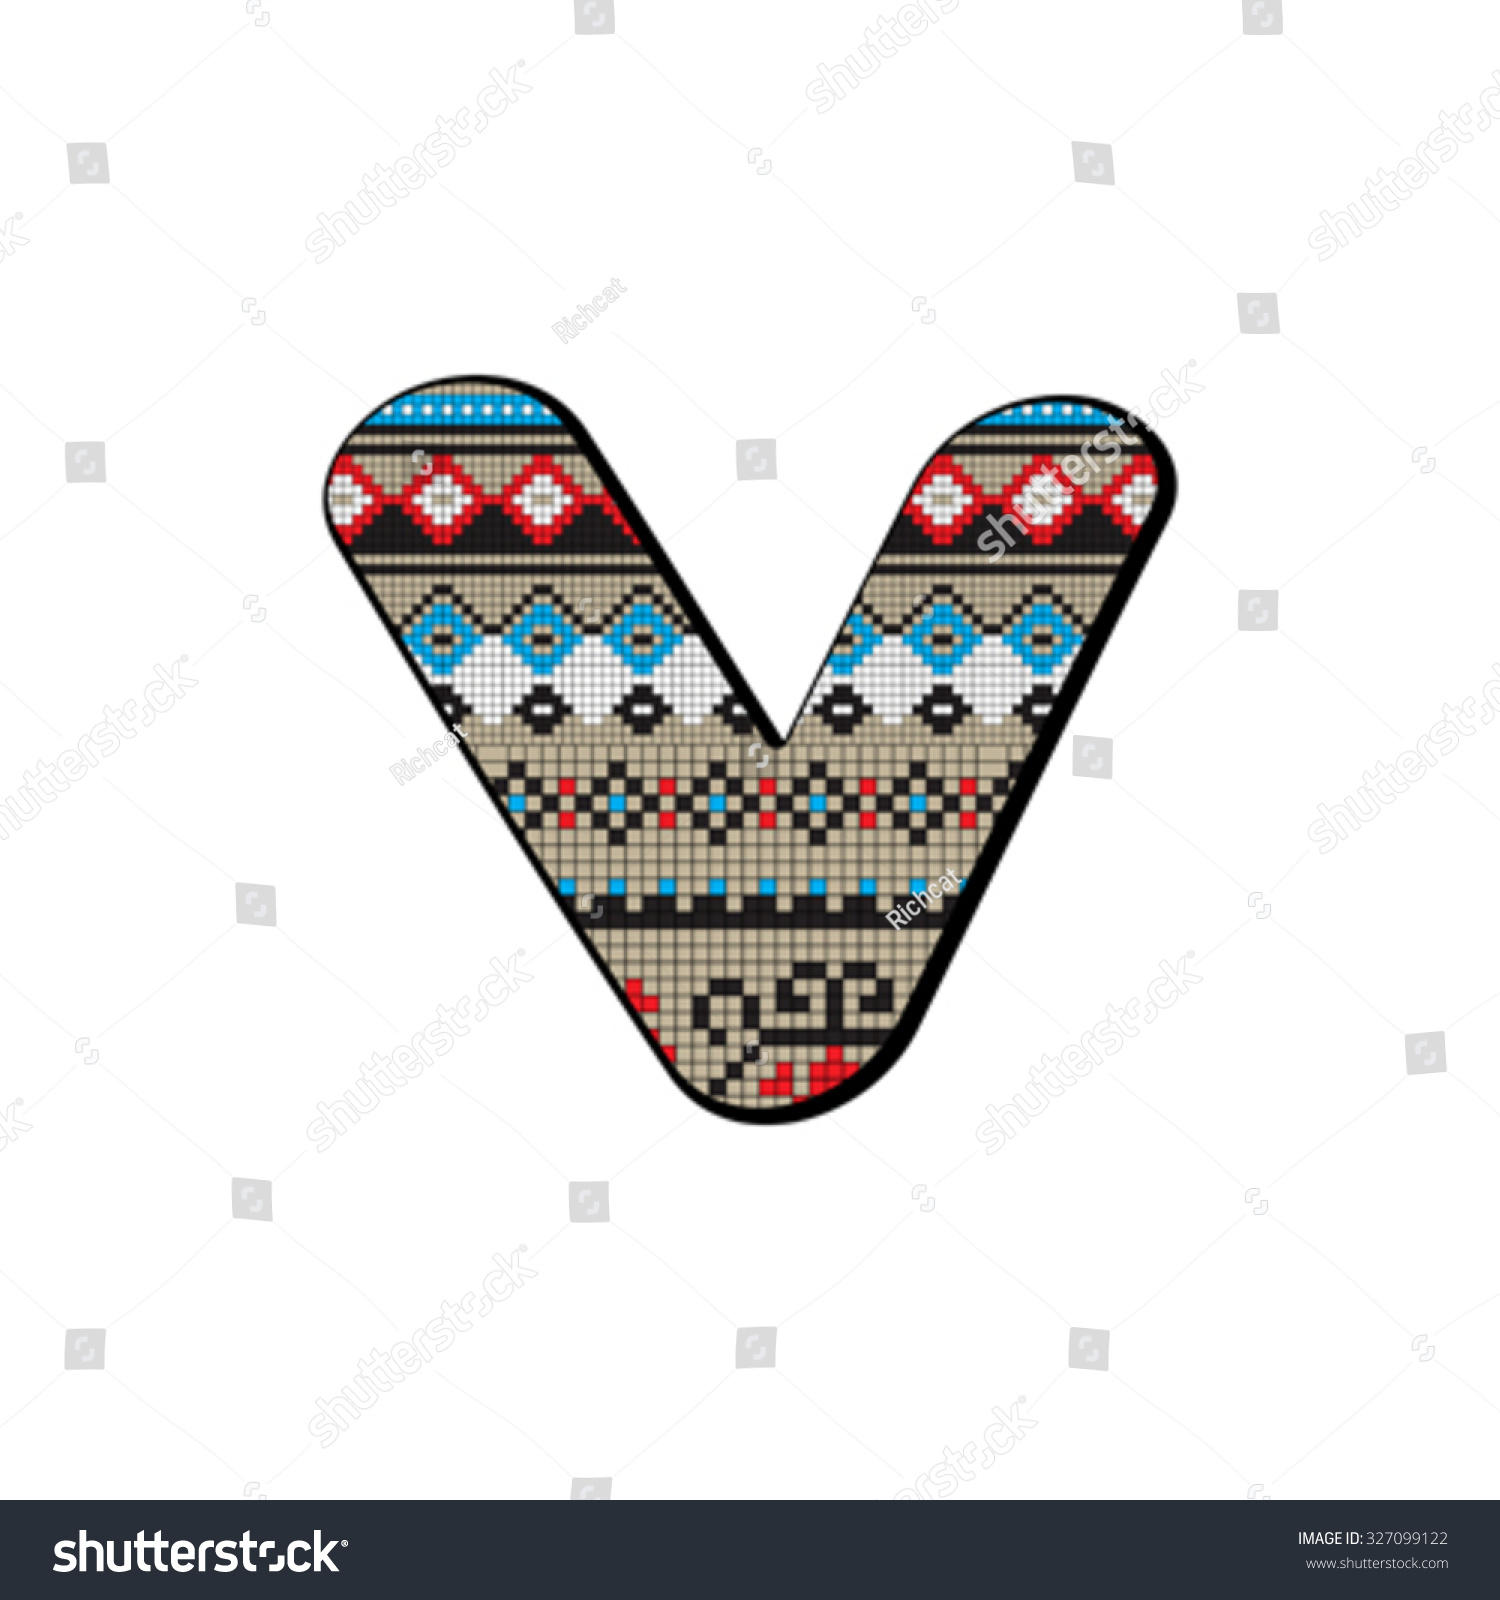 Decorated original font pixel art ethnic stock vector 327099122 decorated original font pixel art ethnic model inspired by a balkan motif over a funny biocorpaavc